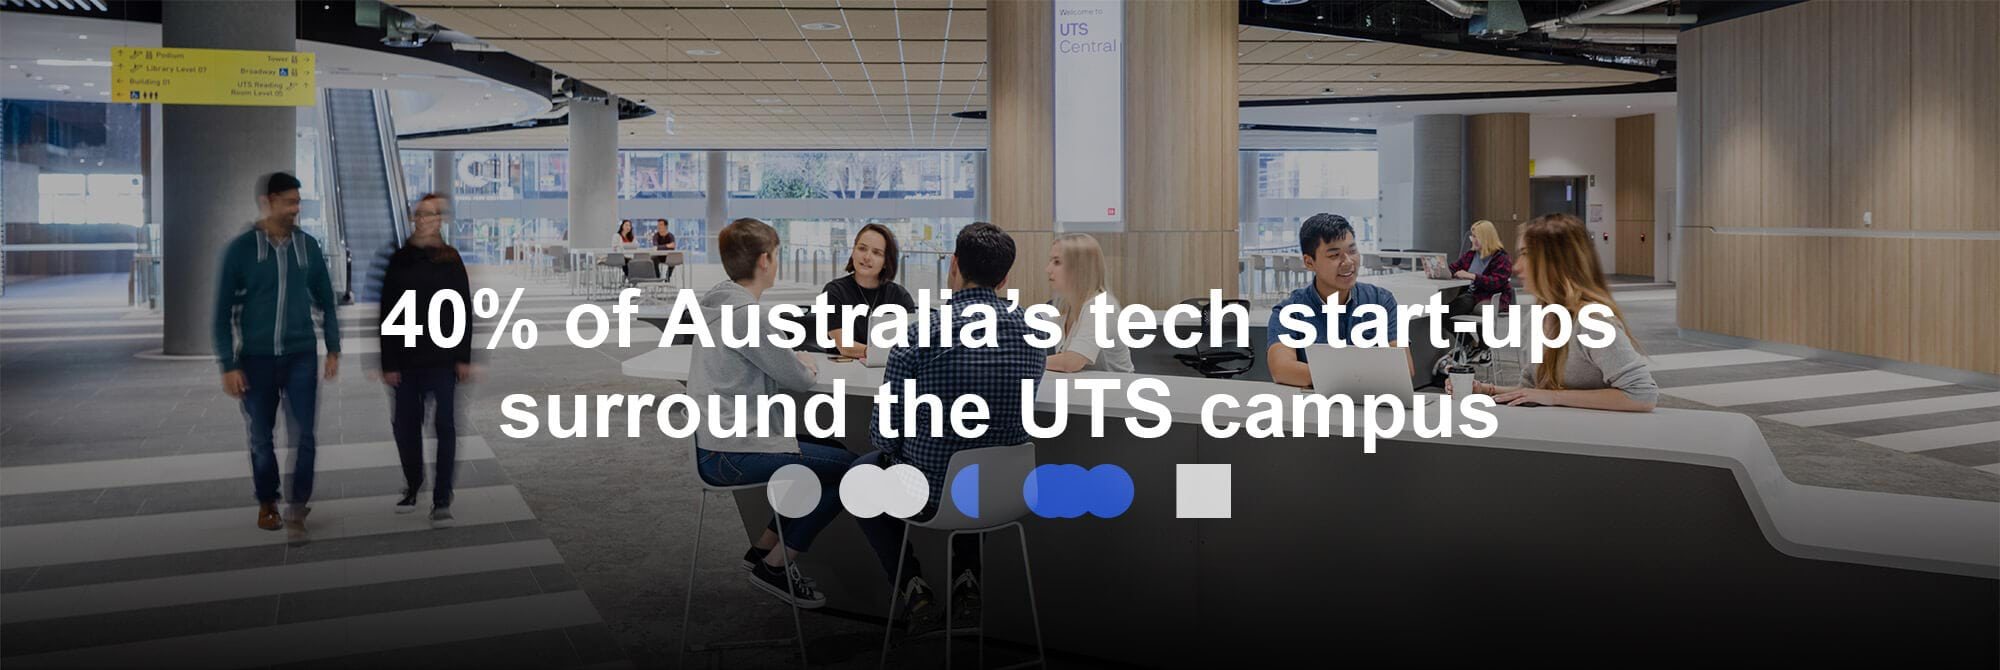 40% of Australia's tech start-ups surround the UTS campus